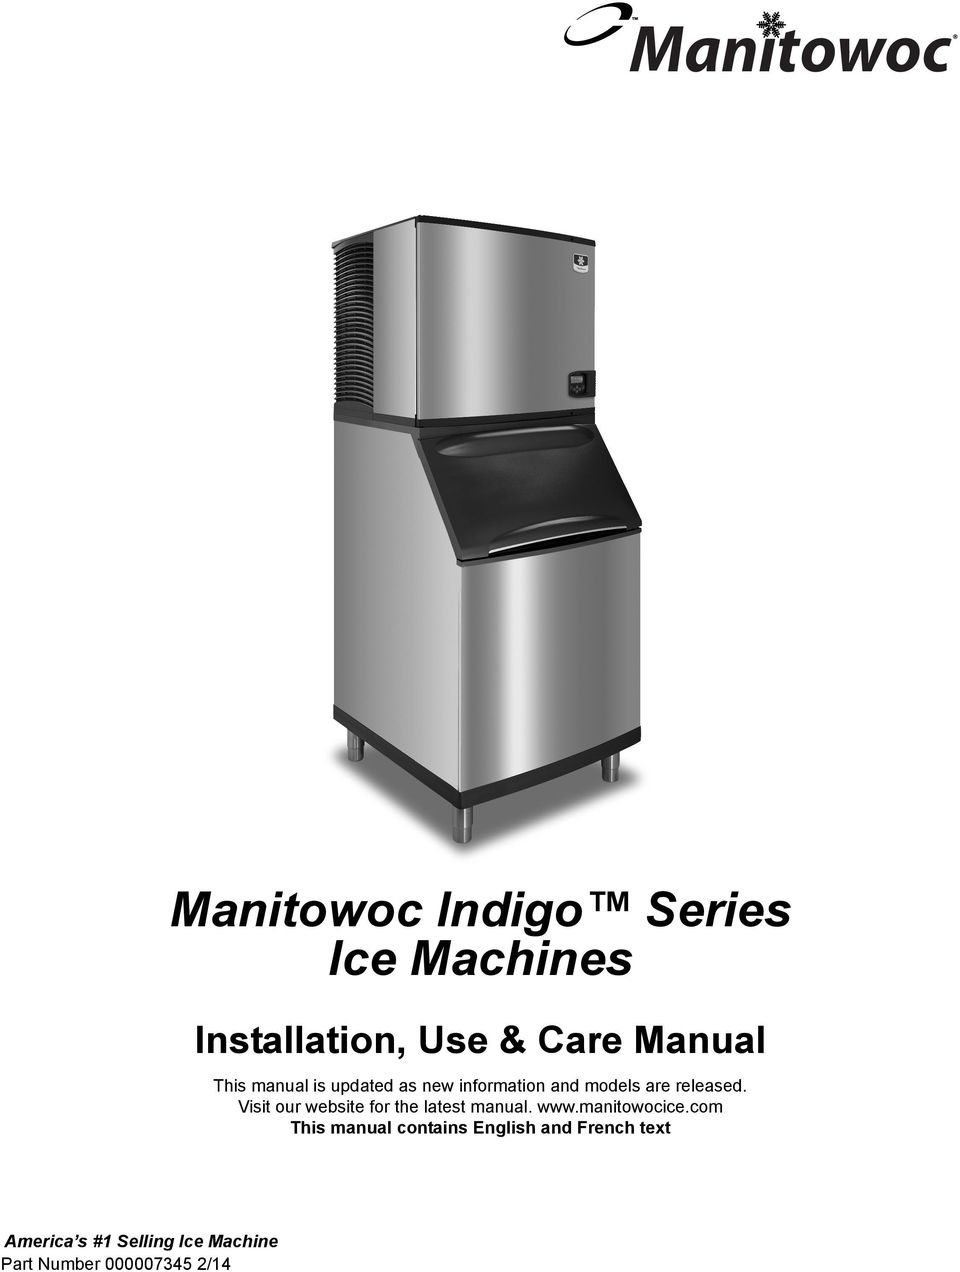 Visit our website for the latest manual. www.manitowocice.